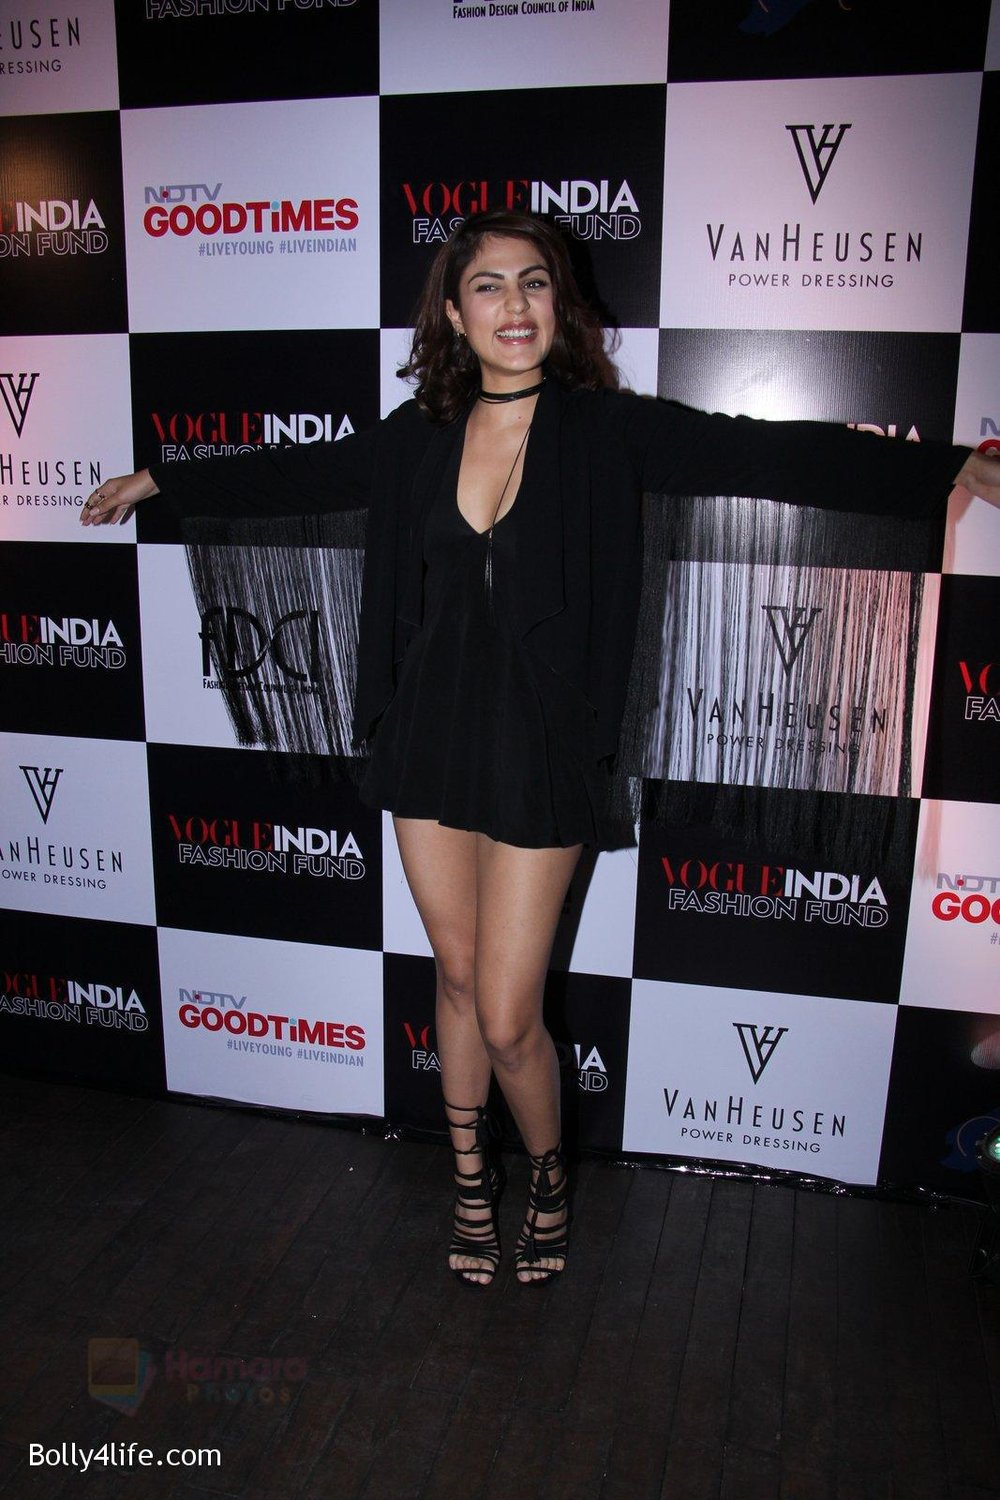 Rhea-Chakraborty-at-Vogue-India-Fashion-Fund-Event-6.jpg